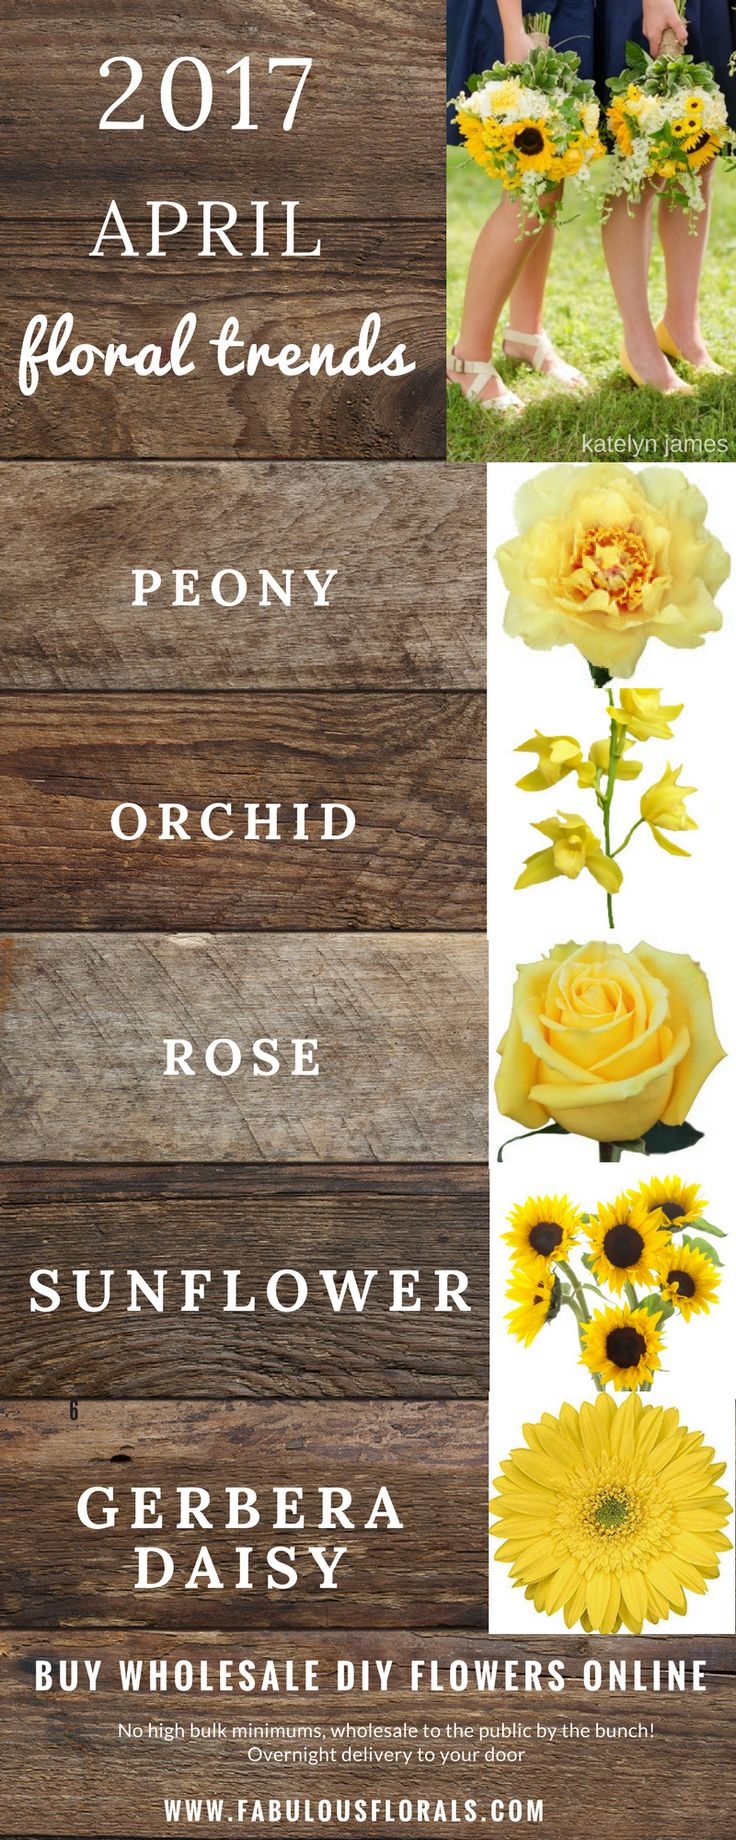 2017 APRIL Seasonal  wedding flower trends! www.fabulousflorals.com The DIY…